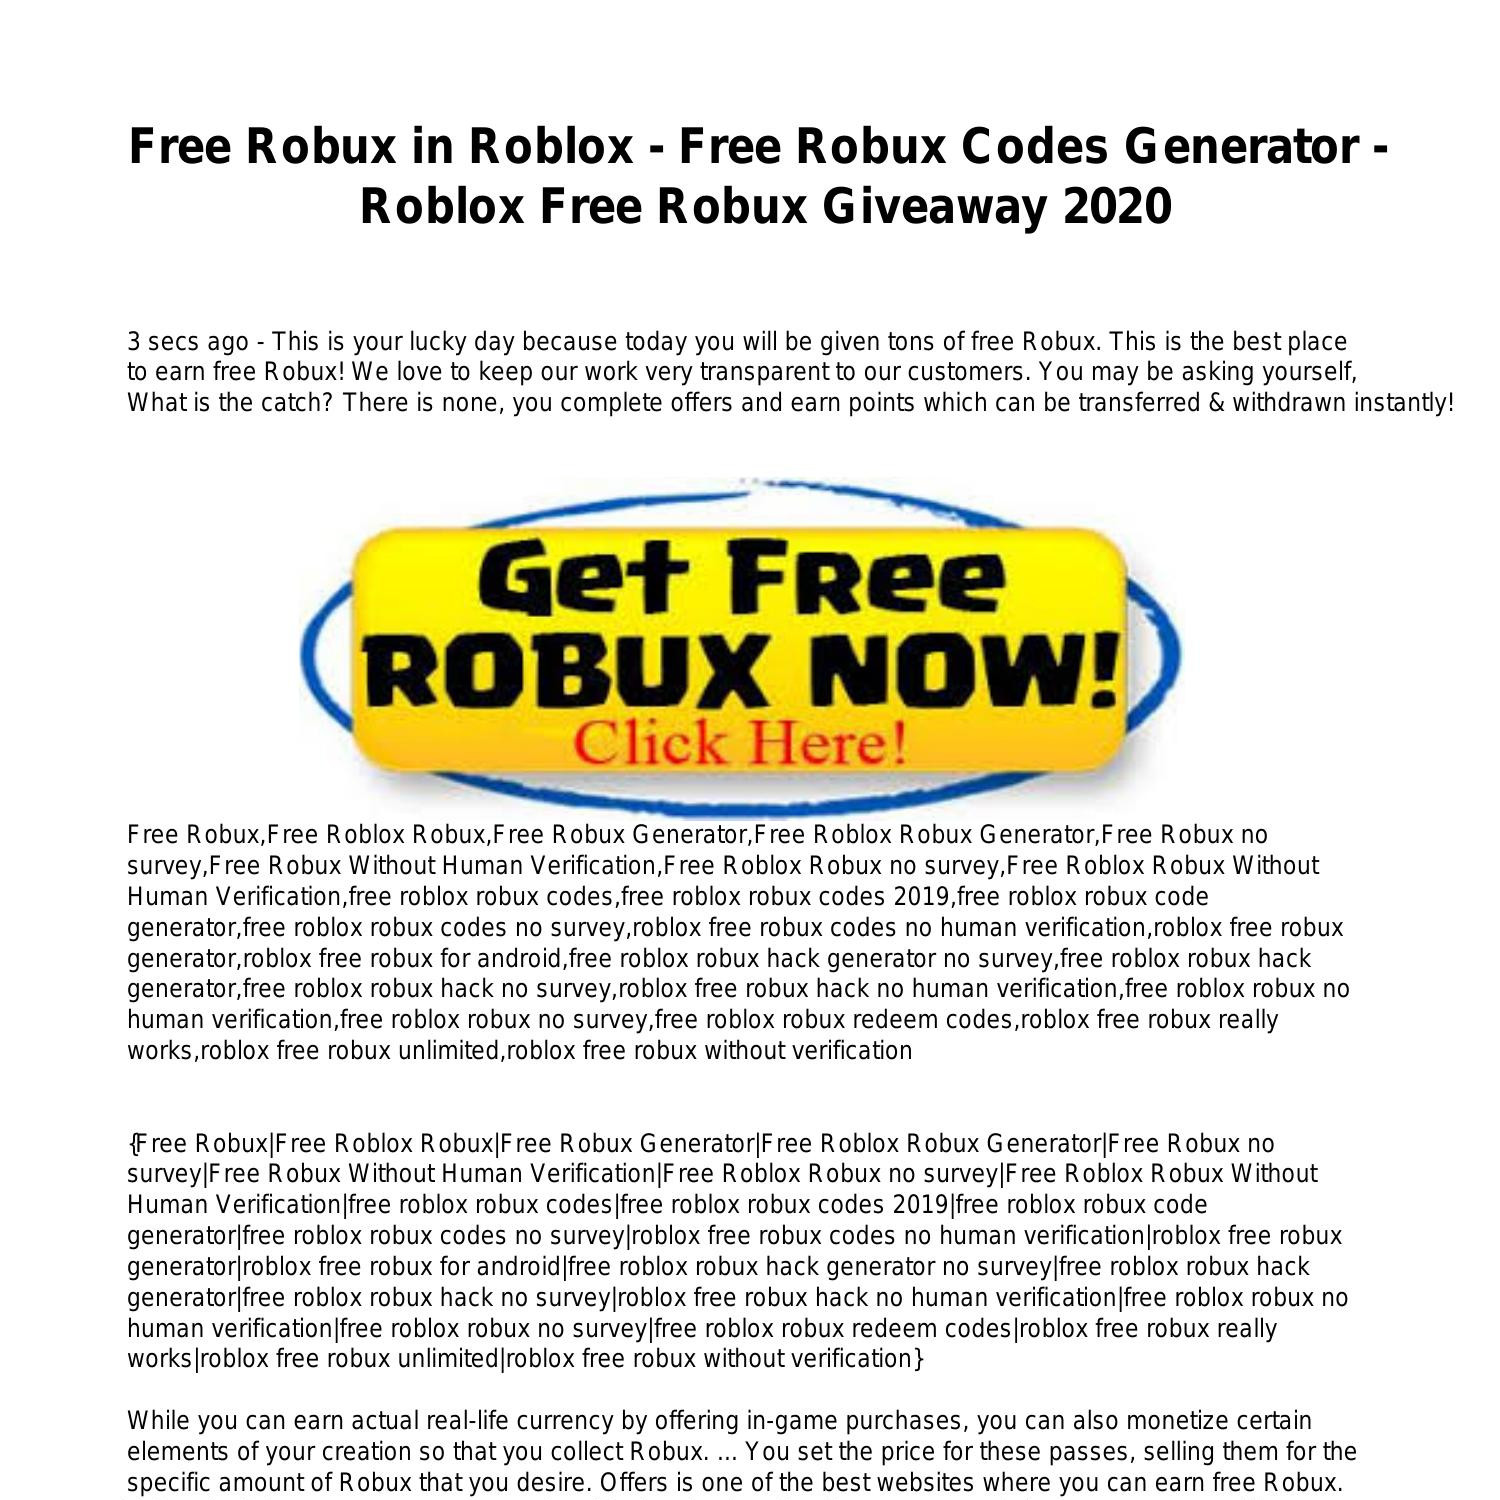 Free Robux In Roblox Free Robux Codes Generator Roblox Free